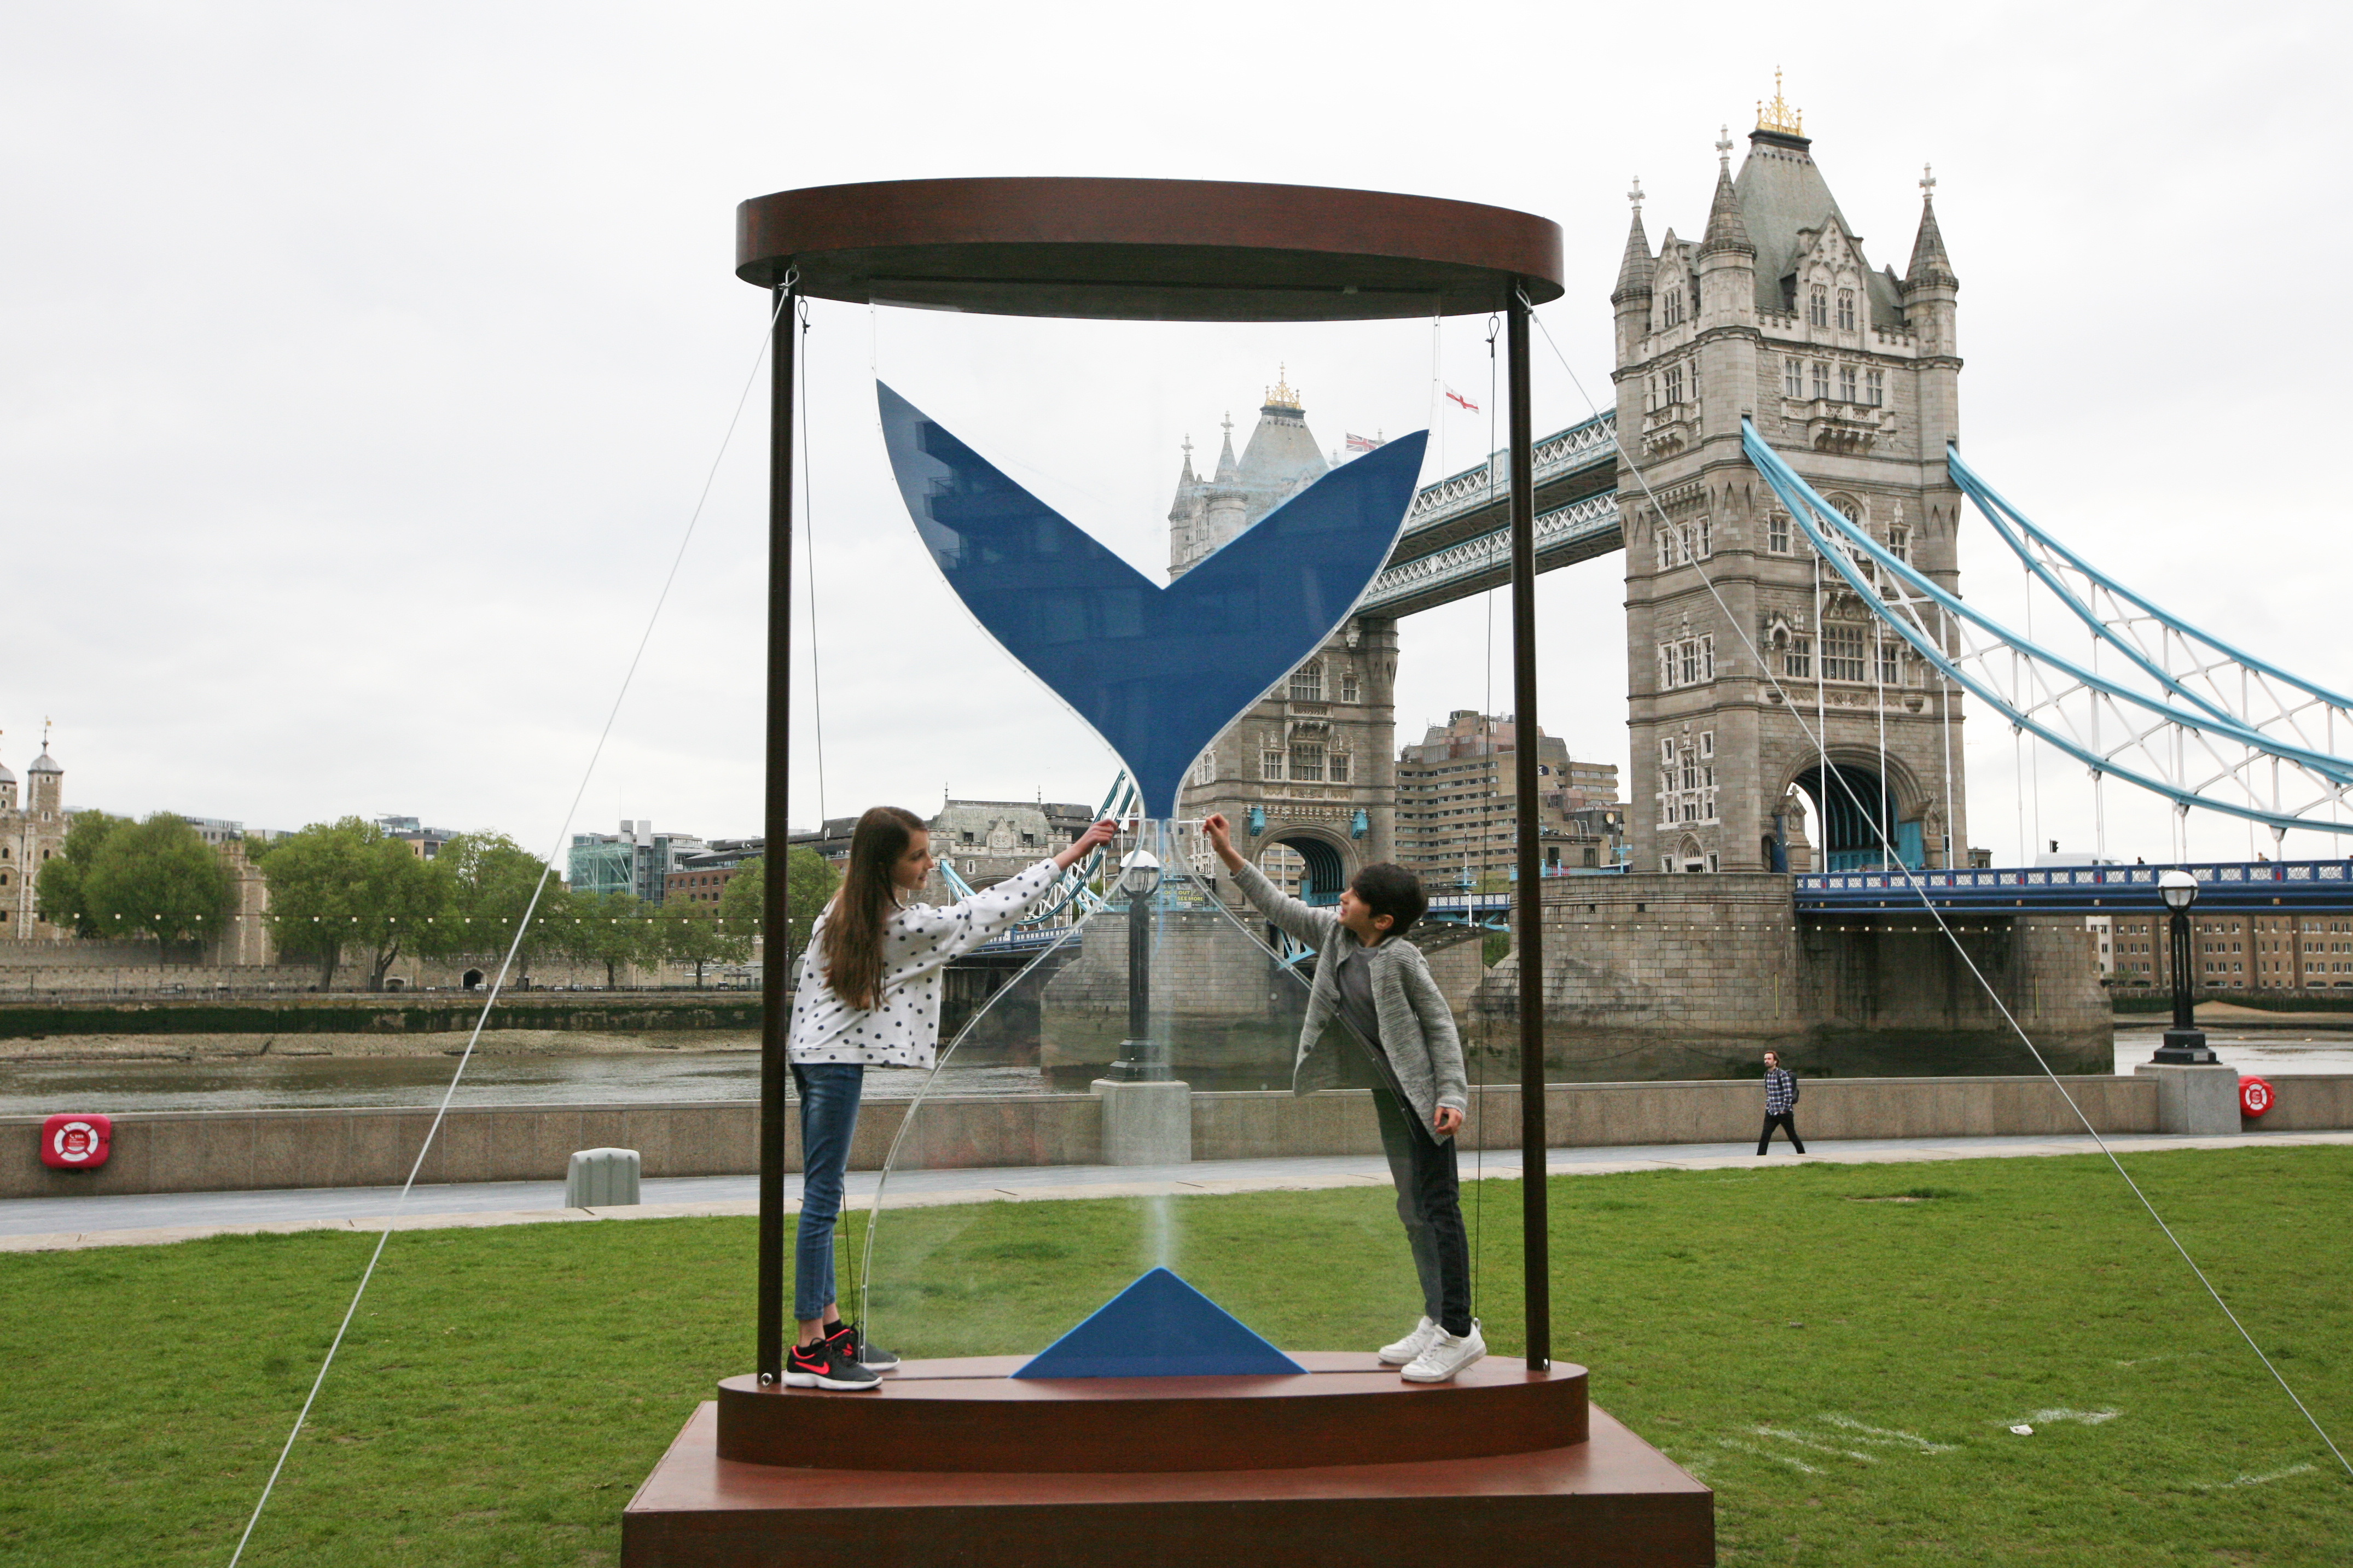 <p>Amelia, aged 9, and Joshua, aged 6, interact with a 3.5 metre hourglass in Potter's Field, London, by clean water charity WaterAid ahead of the G7 leaders' summit in June that illustrates the urgency of the climate crisis that is leading to more people being forced into water scarcity. Picture date: Tuesday May 25, 2021.</p>